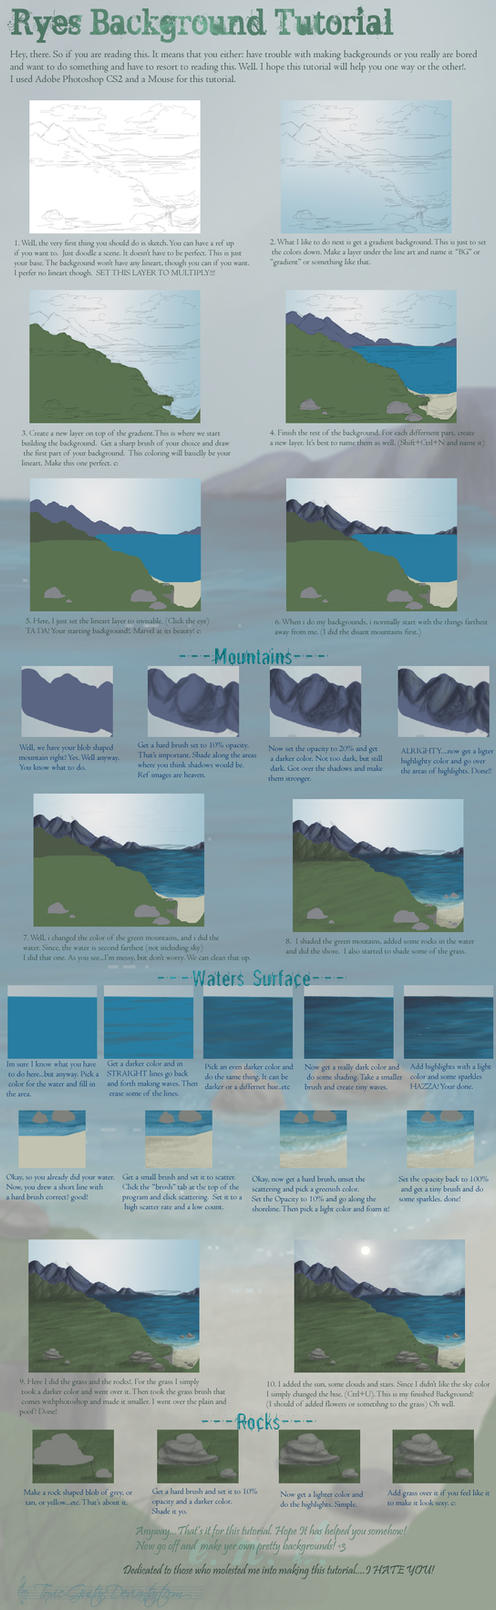 Background Tutorial by Policide